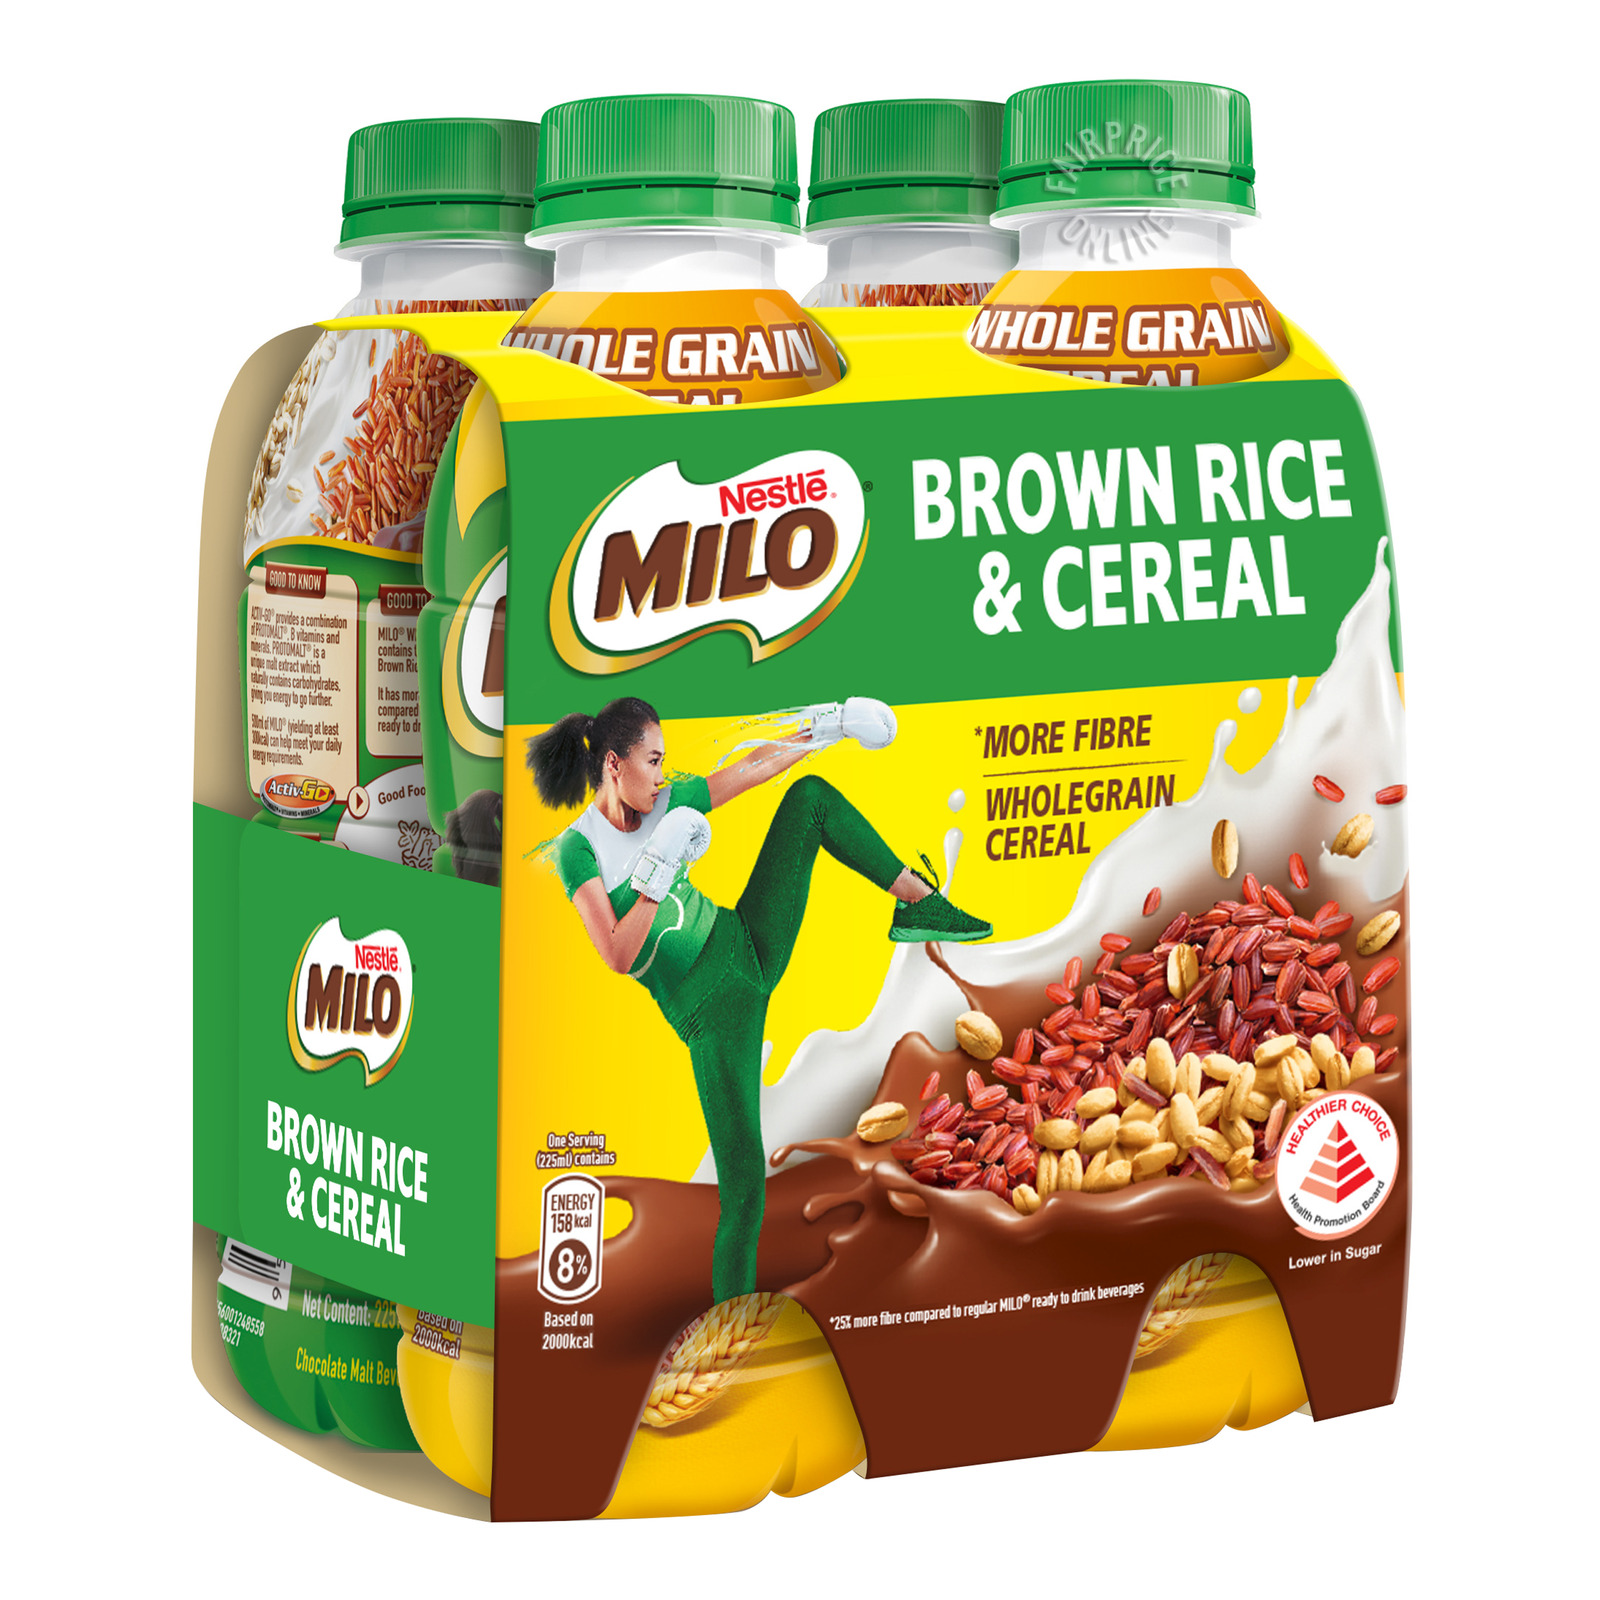 Nestle Milo Whole Grain Cereal Drink - Brown Rice & Cereal